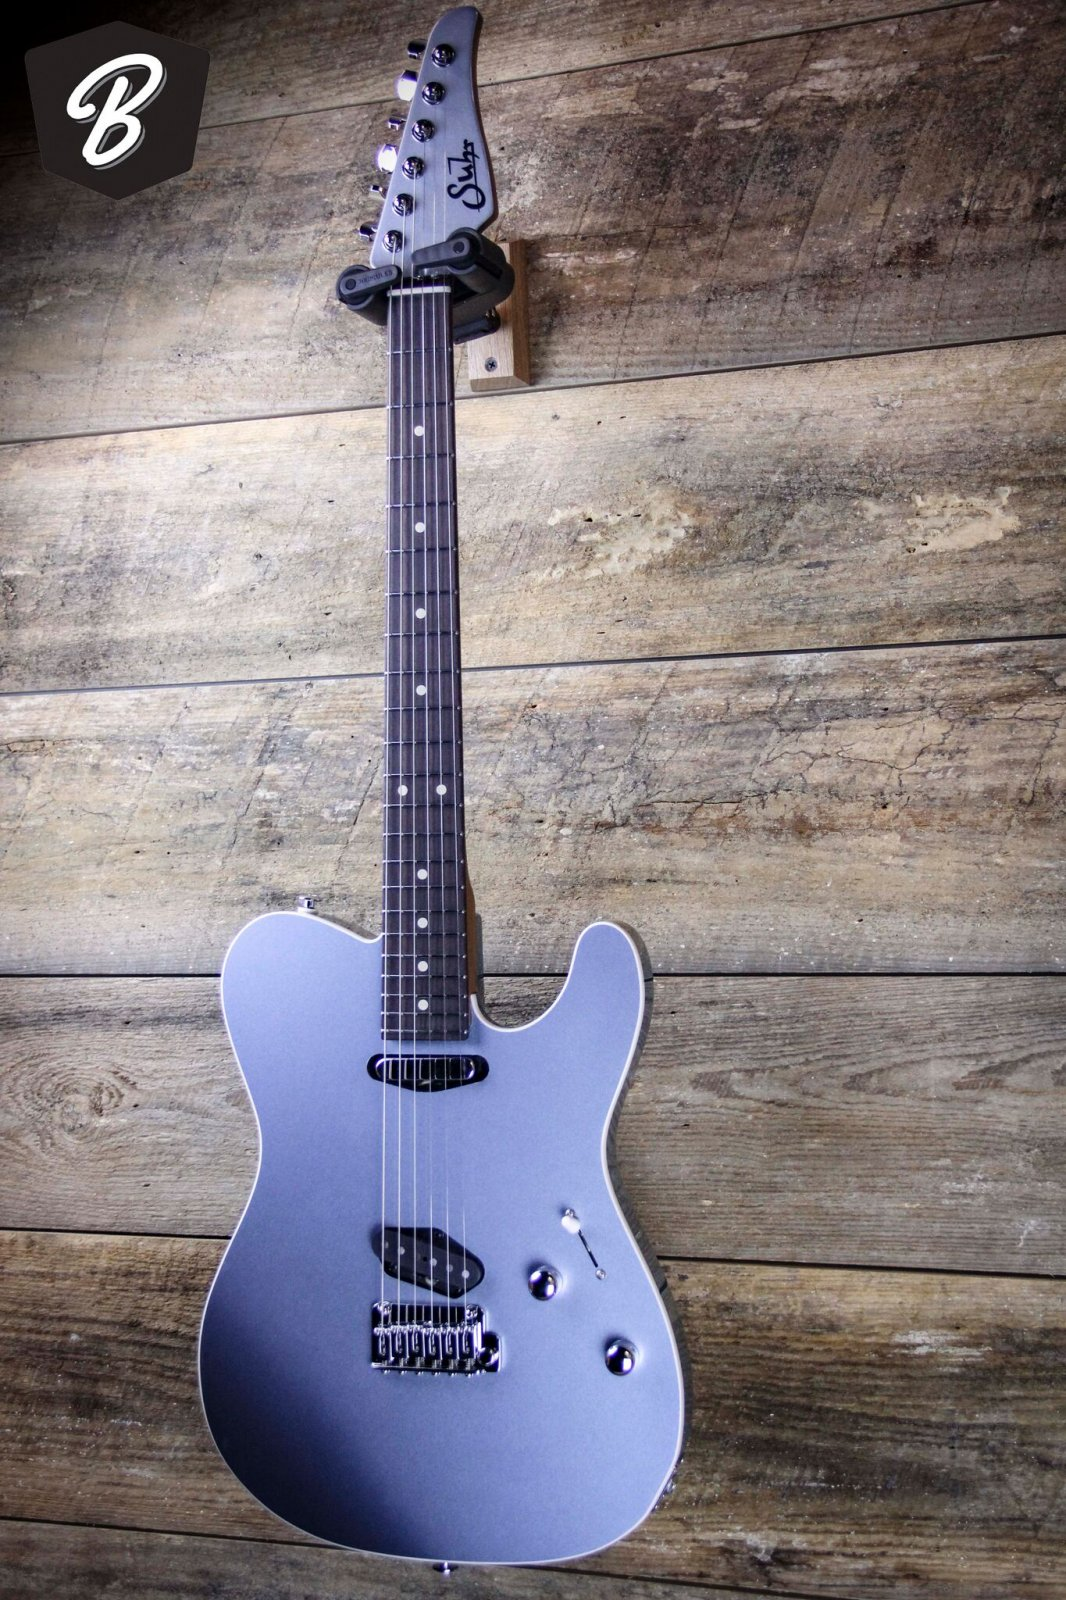 suhr custom classic t guitar roasted neck w white binding and hardshell case 93094890005. Black Bedroom Furniture Sets. Home Design Ideas